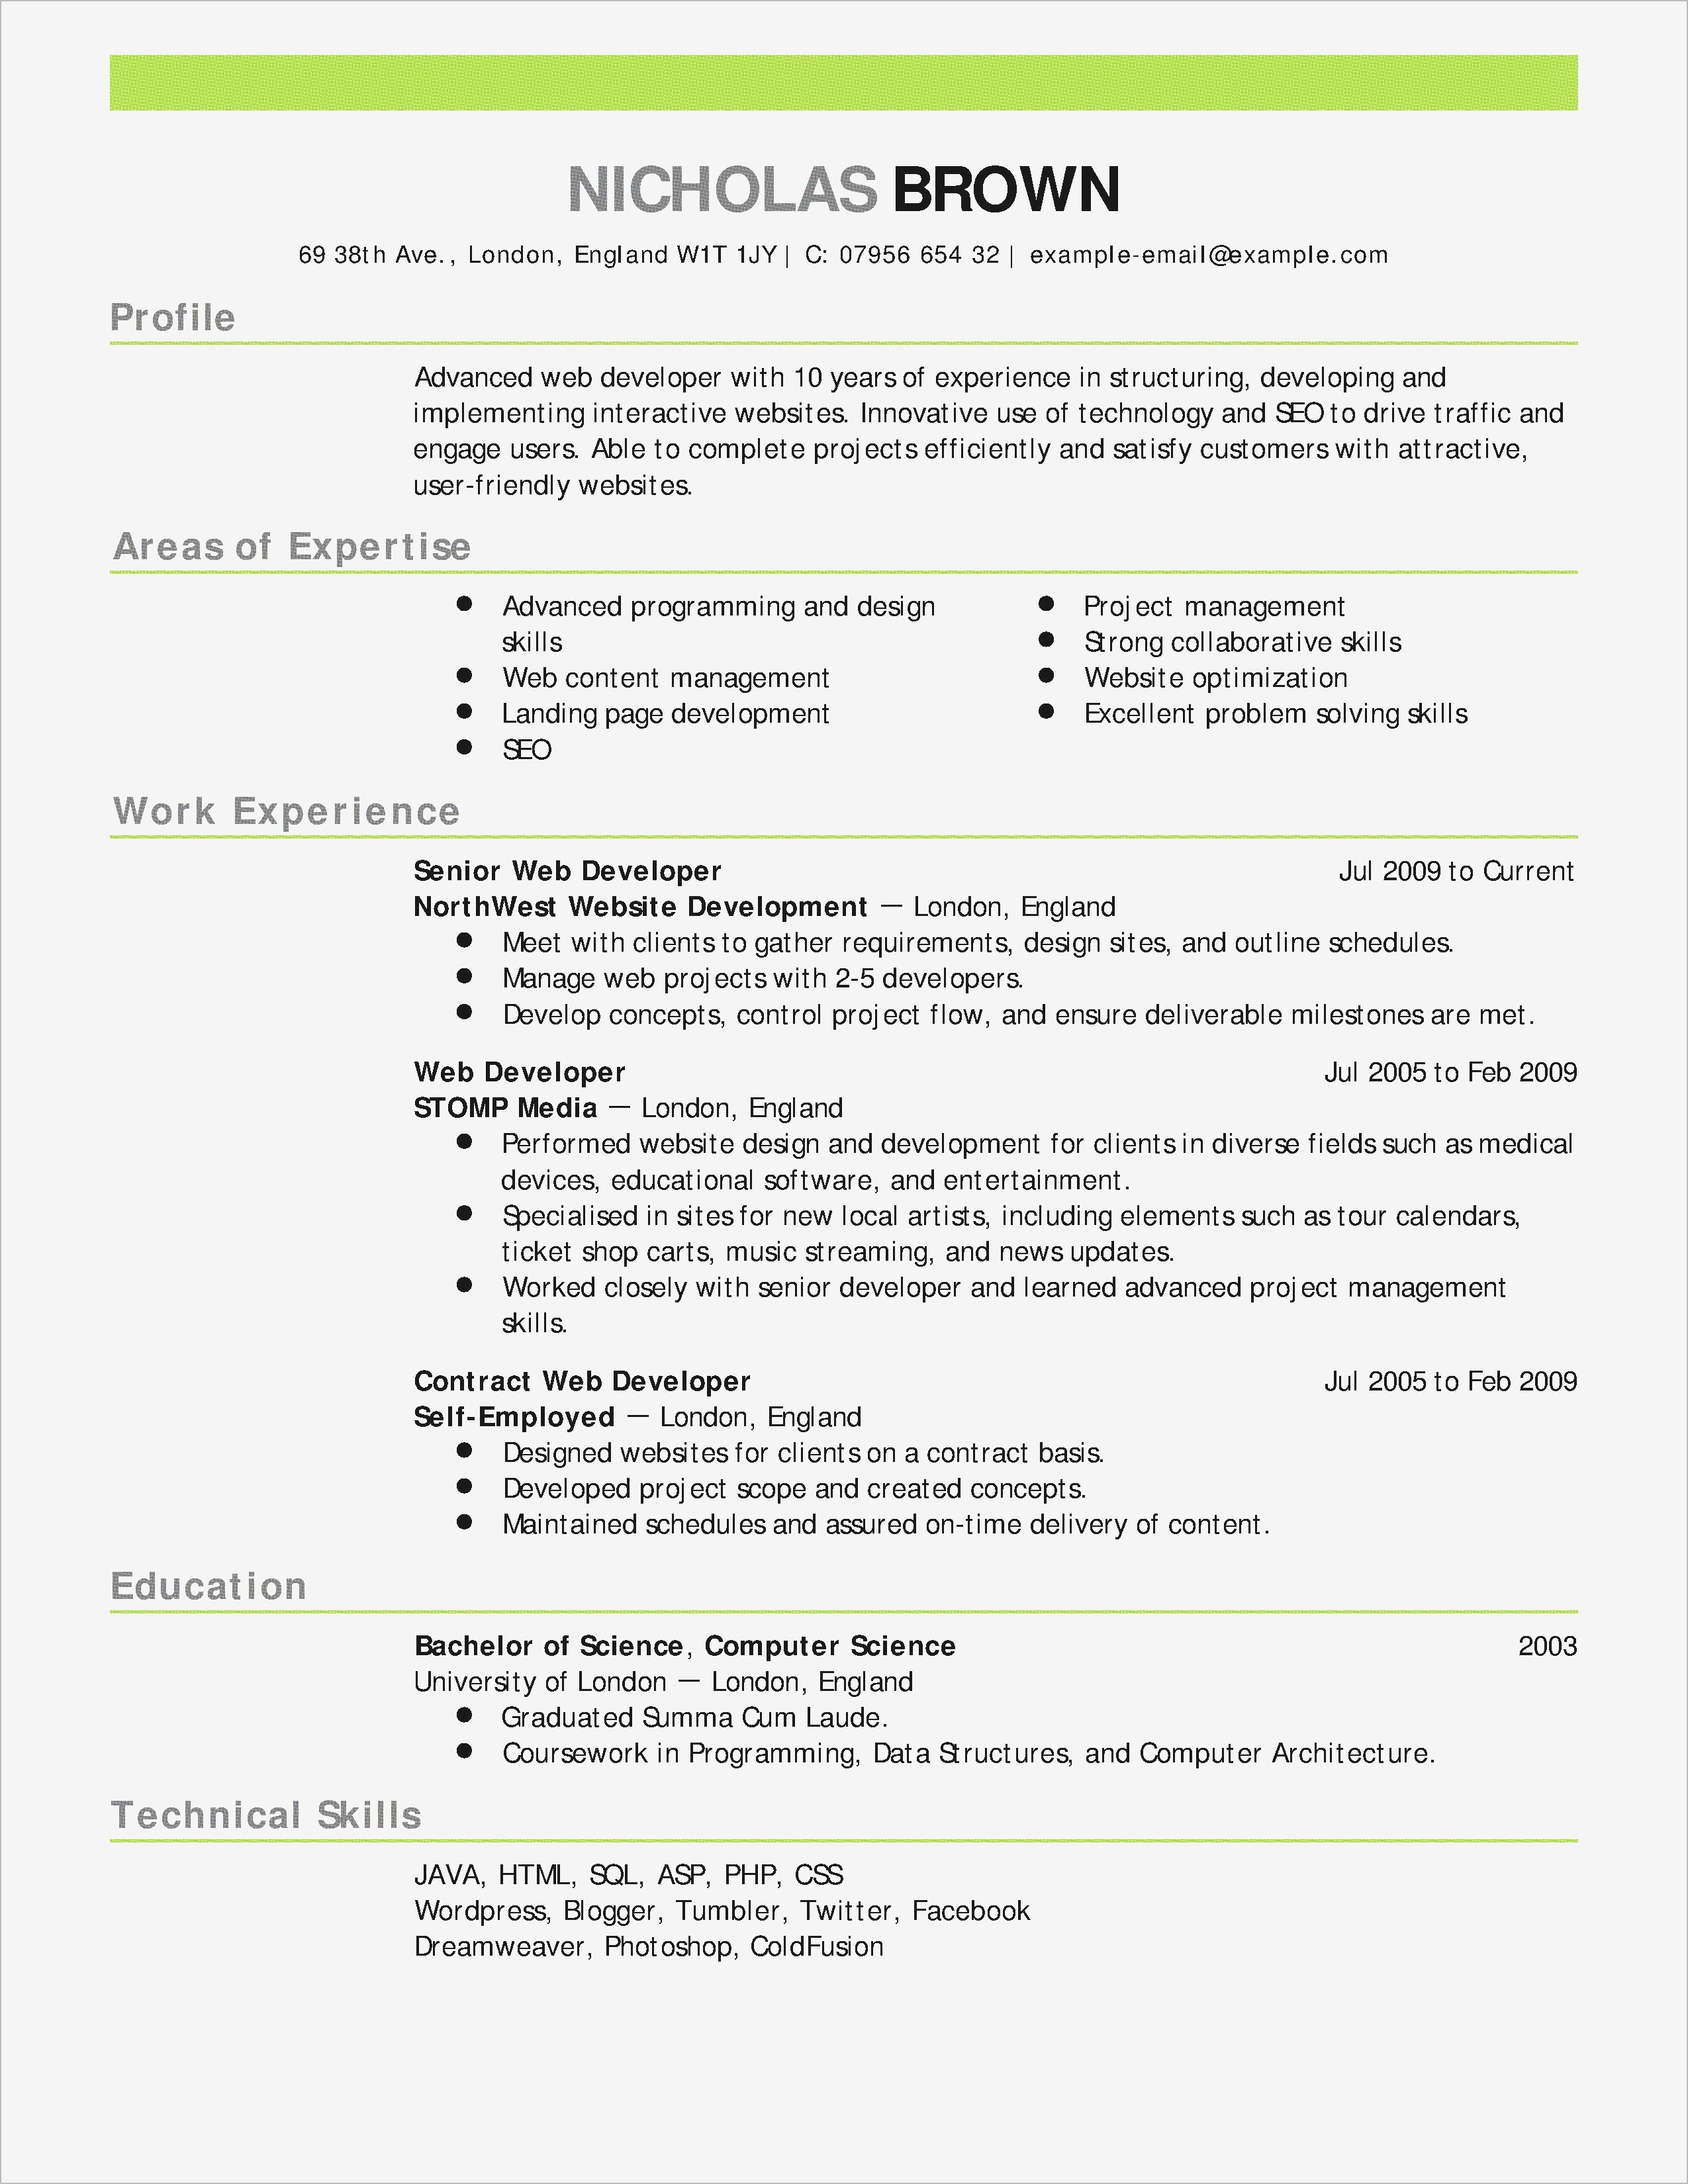 resume with cover letter template Collection-maintenance cover letter template maintenance experience resume reference elegant cover letter writing service awesome paralegal resume 0d 6g 11-j